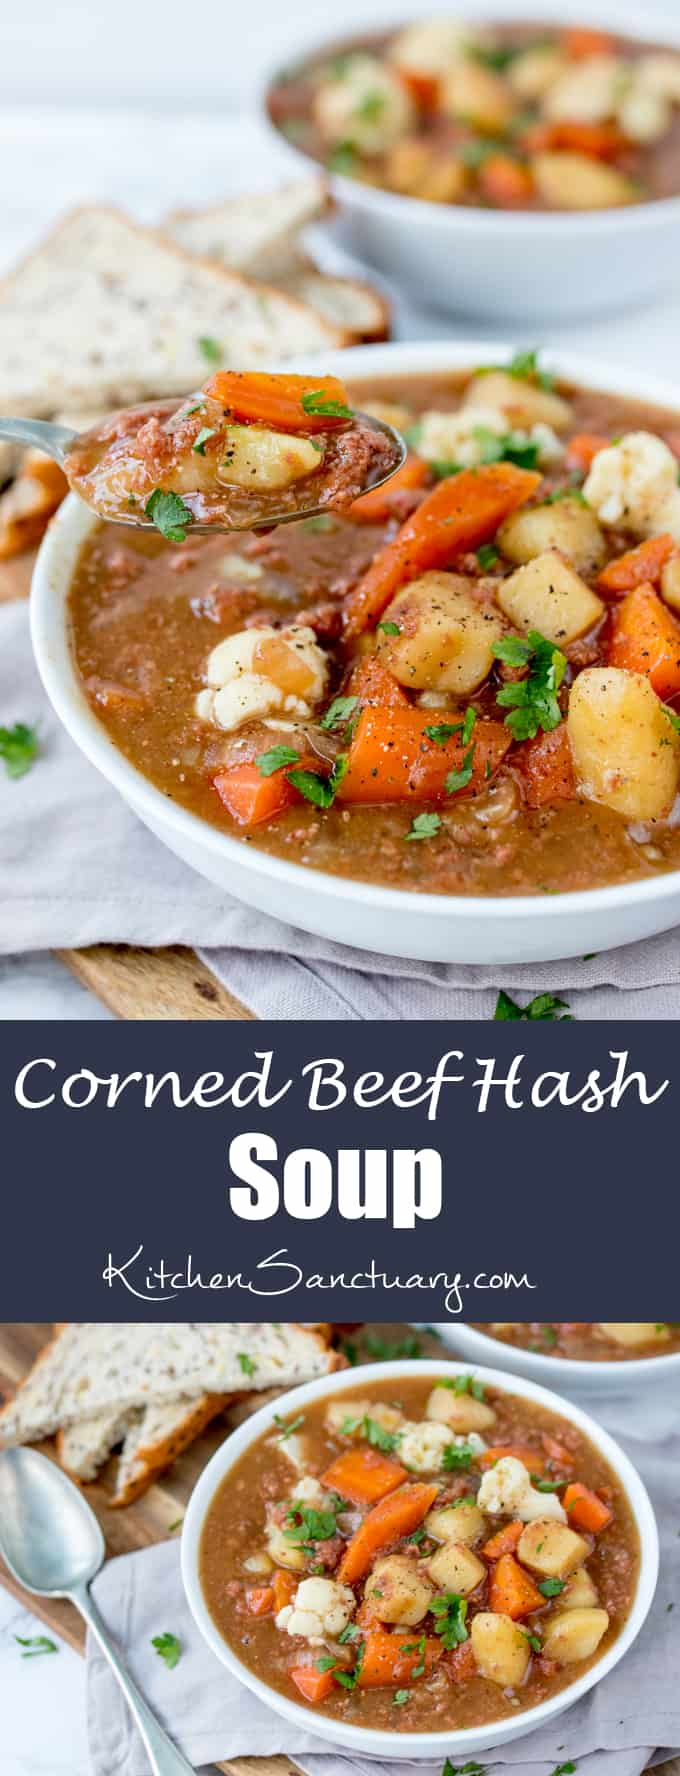 This rich and meaty corned beef hash soup is filling enough for dinner. Ready in 30 mins too!